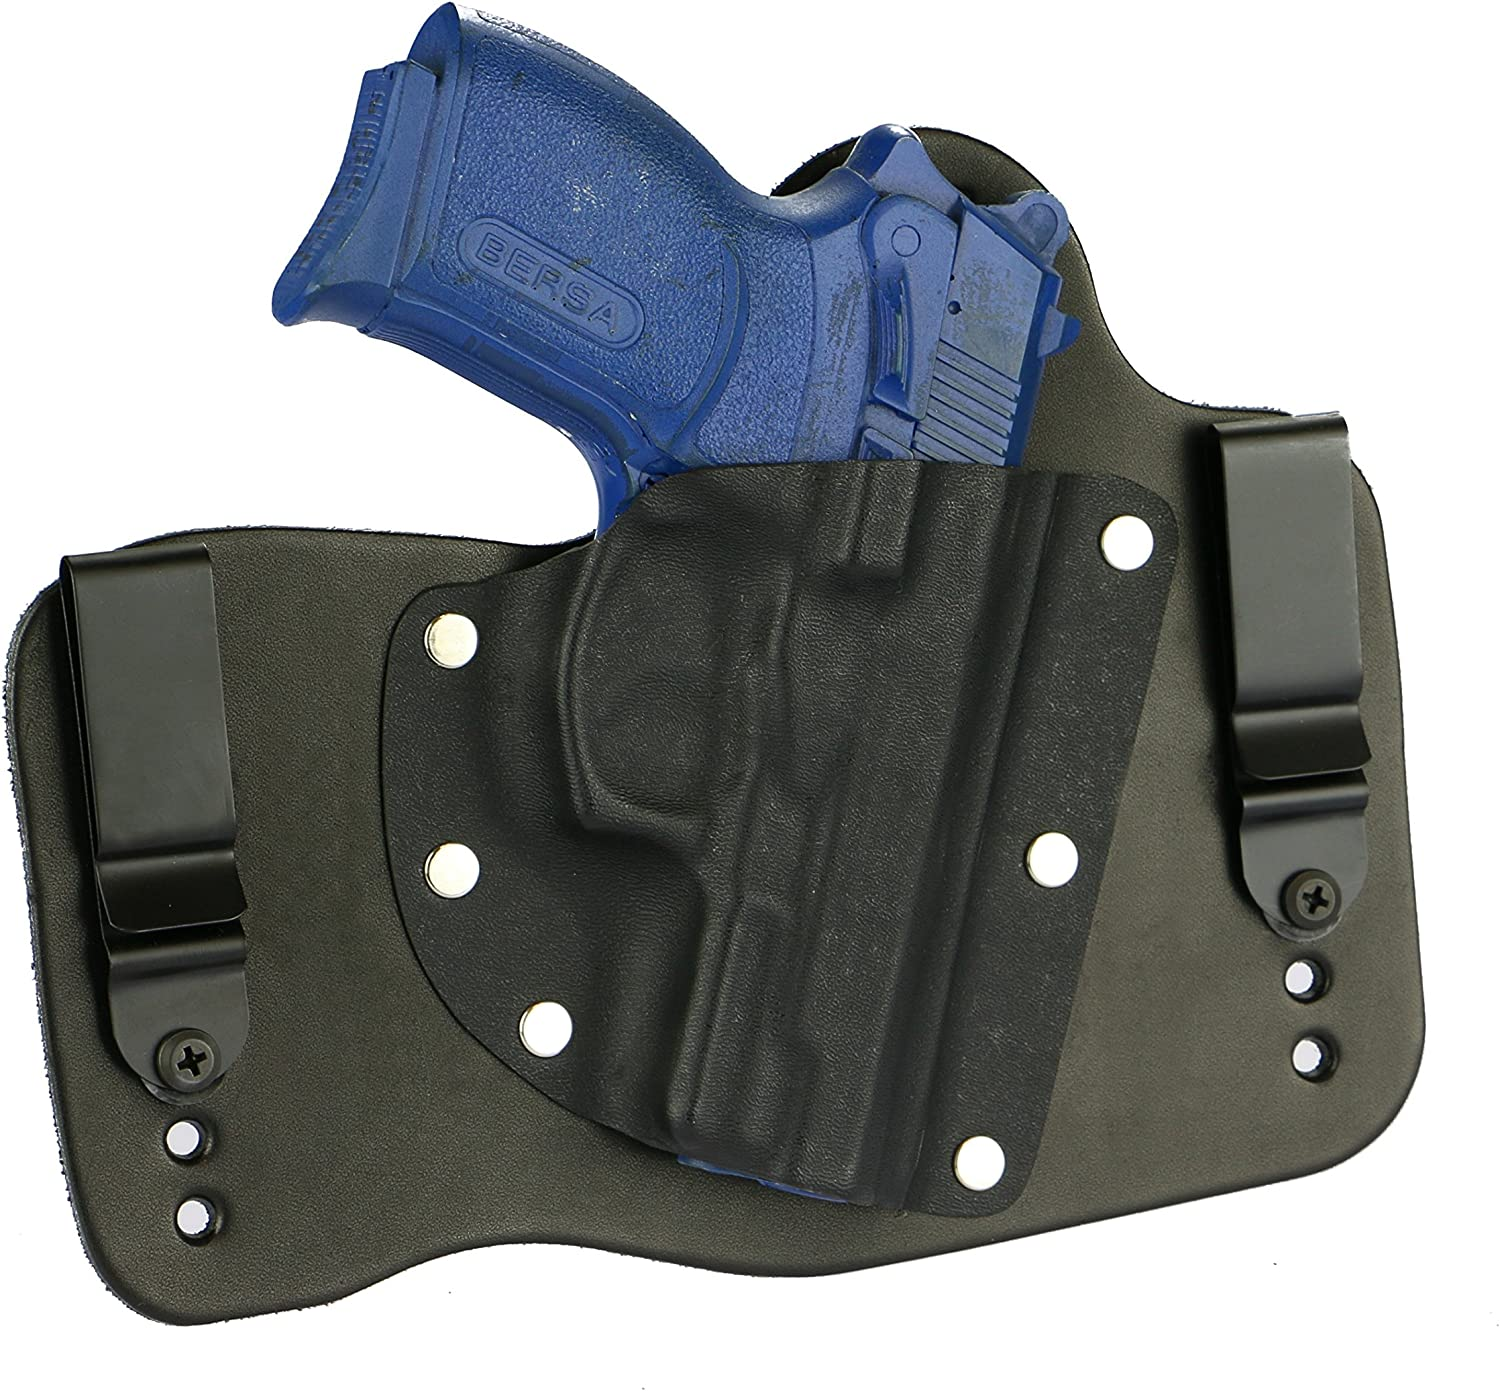 FoxX Challenge the lowest price Holsters Bersa Thunder Ultra High quality new Compact Pro 40 The 45 Wai 9 in